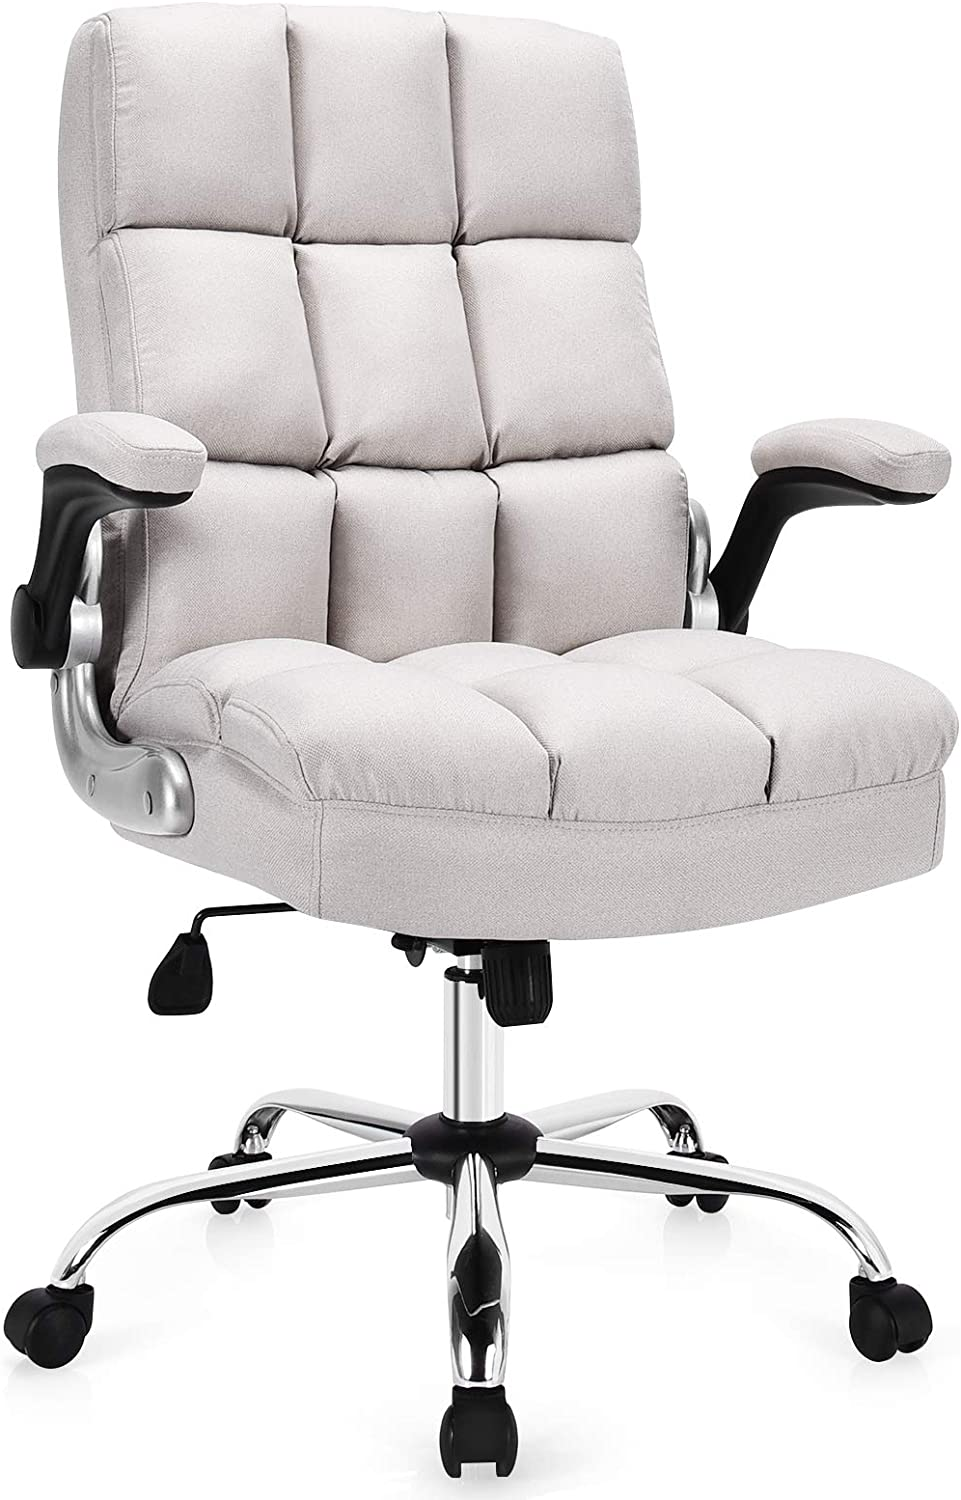 Giantex Executive Office Chair, Big and Tall Ergonomic Computer Chair, Adjustable Tilt Angle and Flip-up Armrest Linen Fabric Upholstered Chair with Thick Padding, High Back Managerial Chair (Beige)